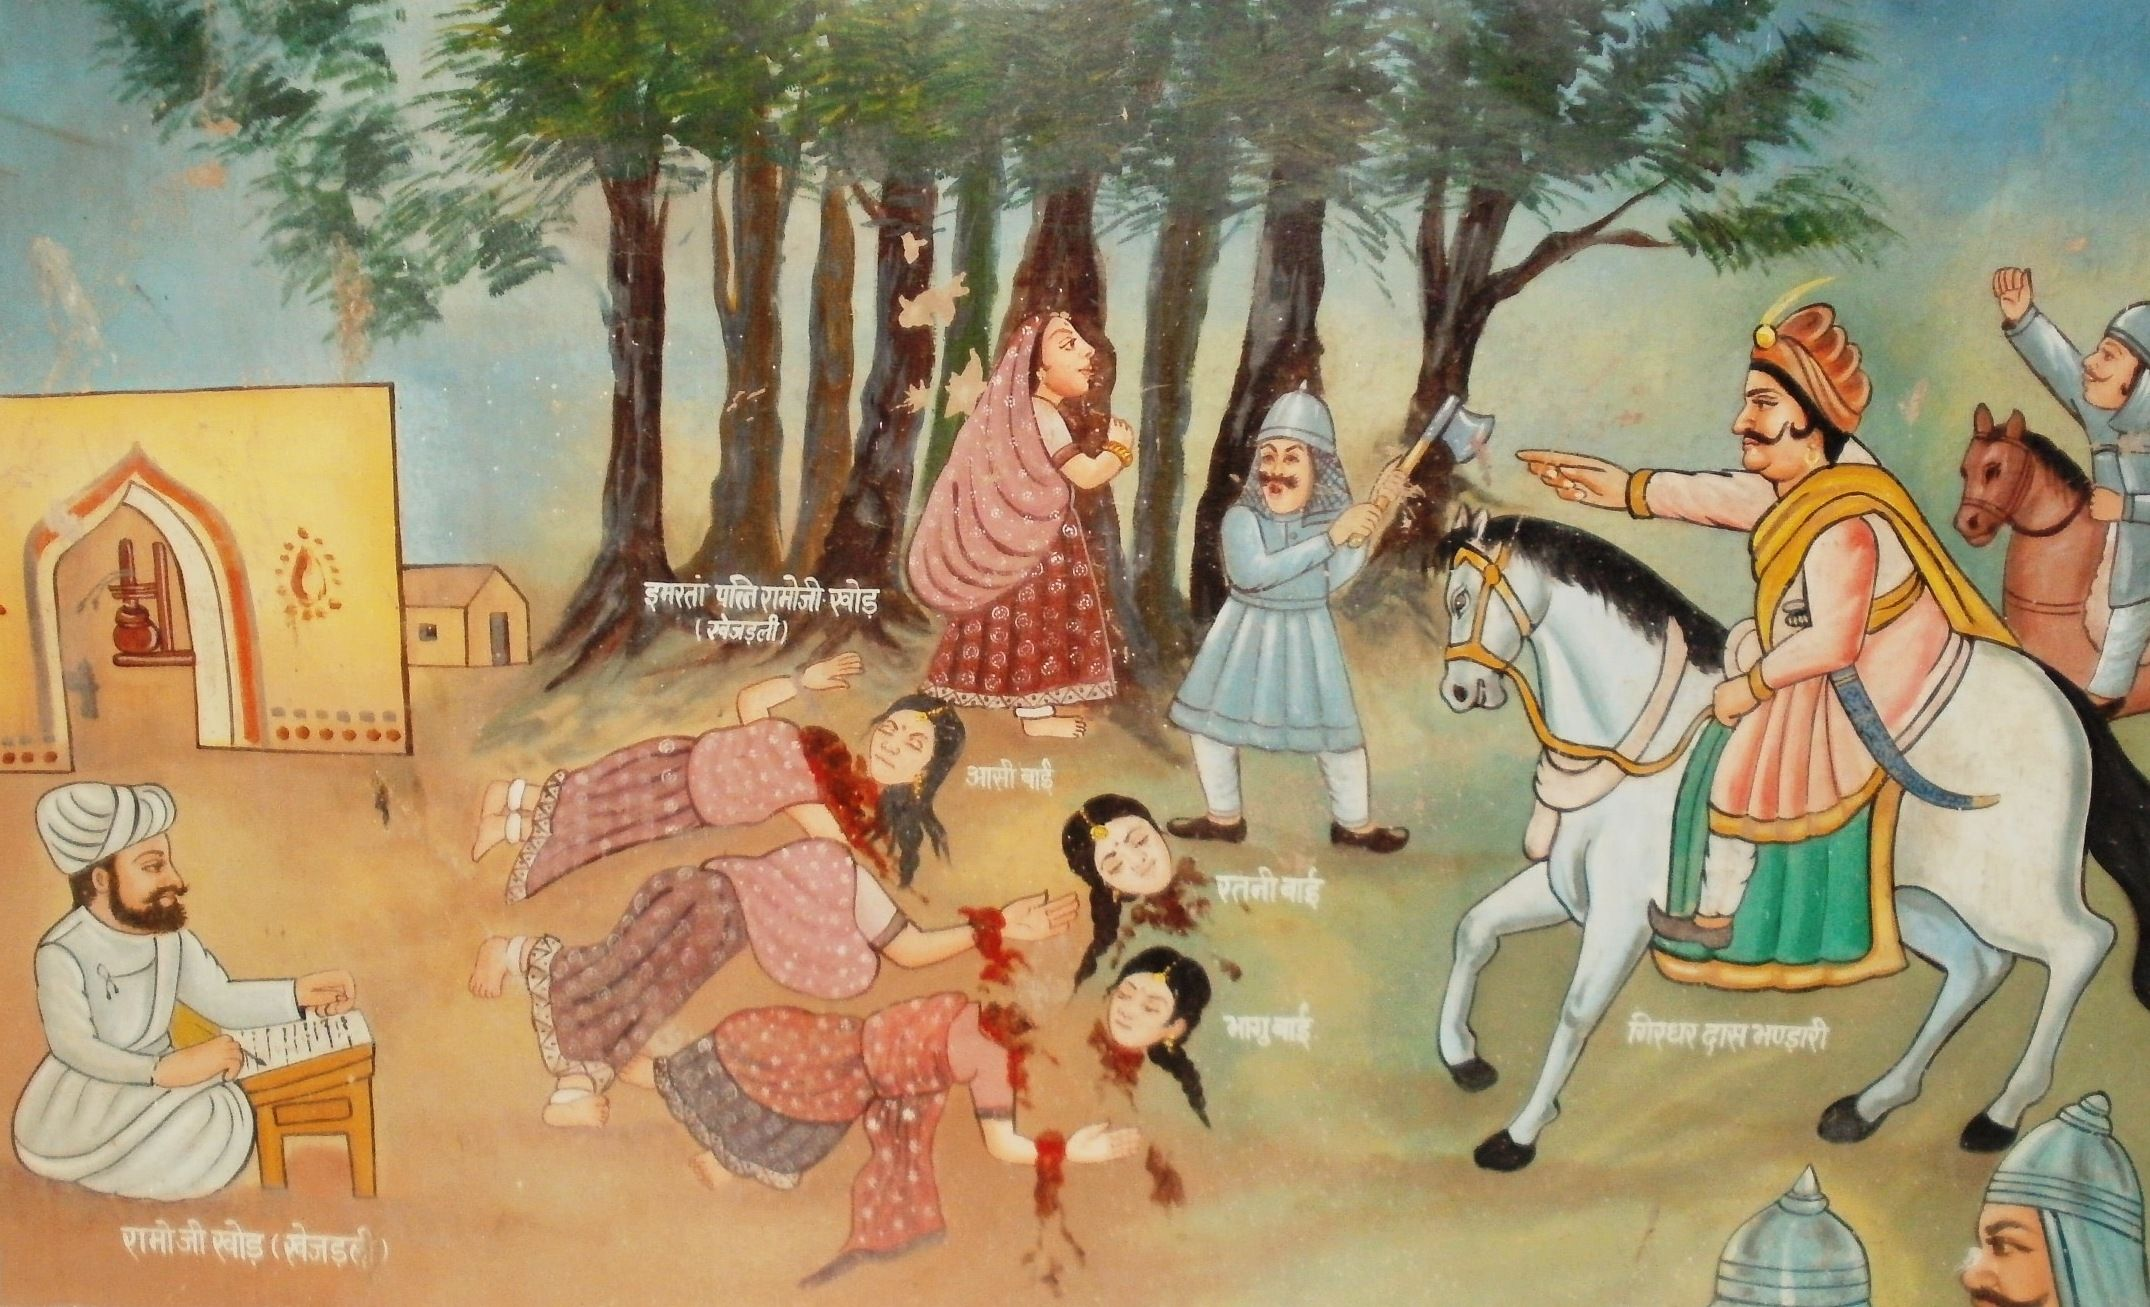 the selfsacrifice of Amrita Devi and her three daughters